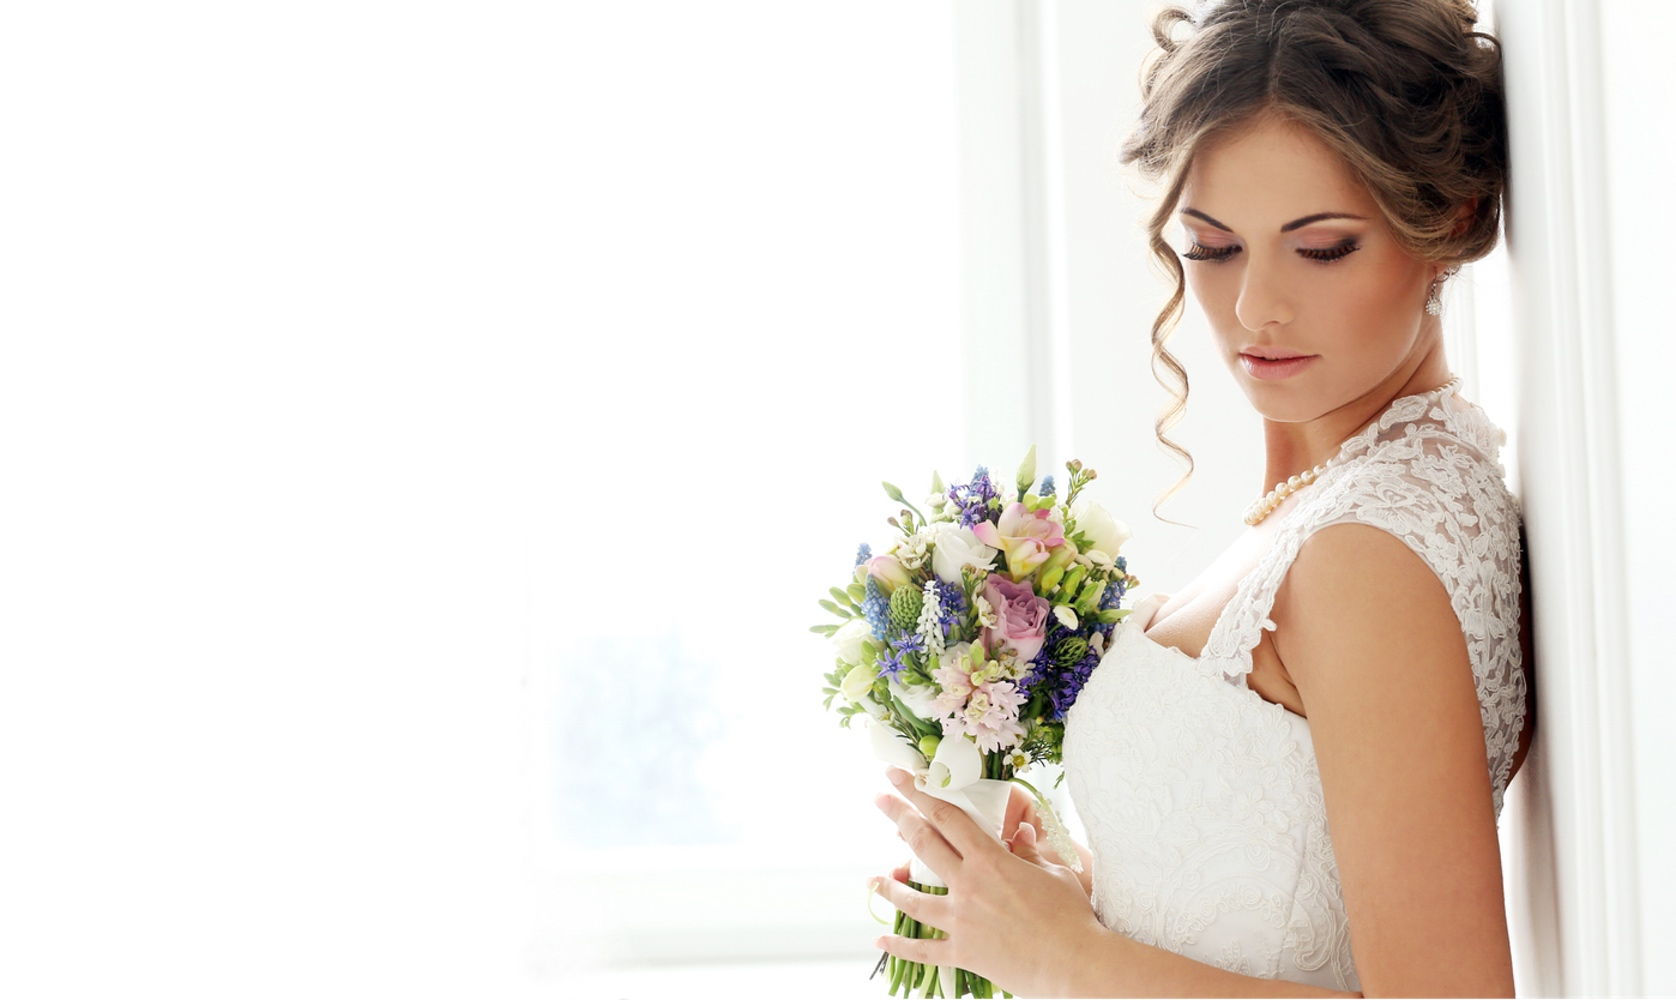 Every bride has her own style - and what you choose...